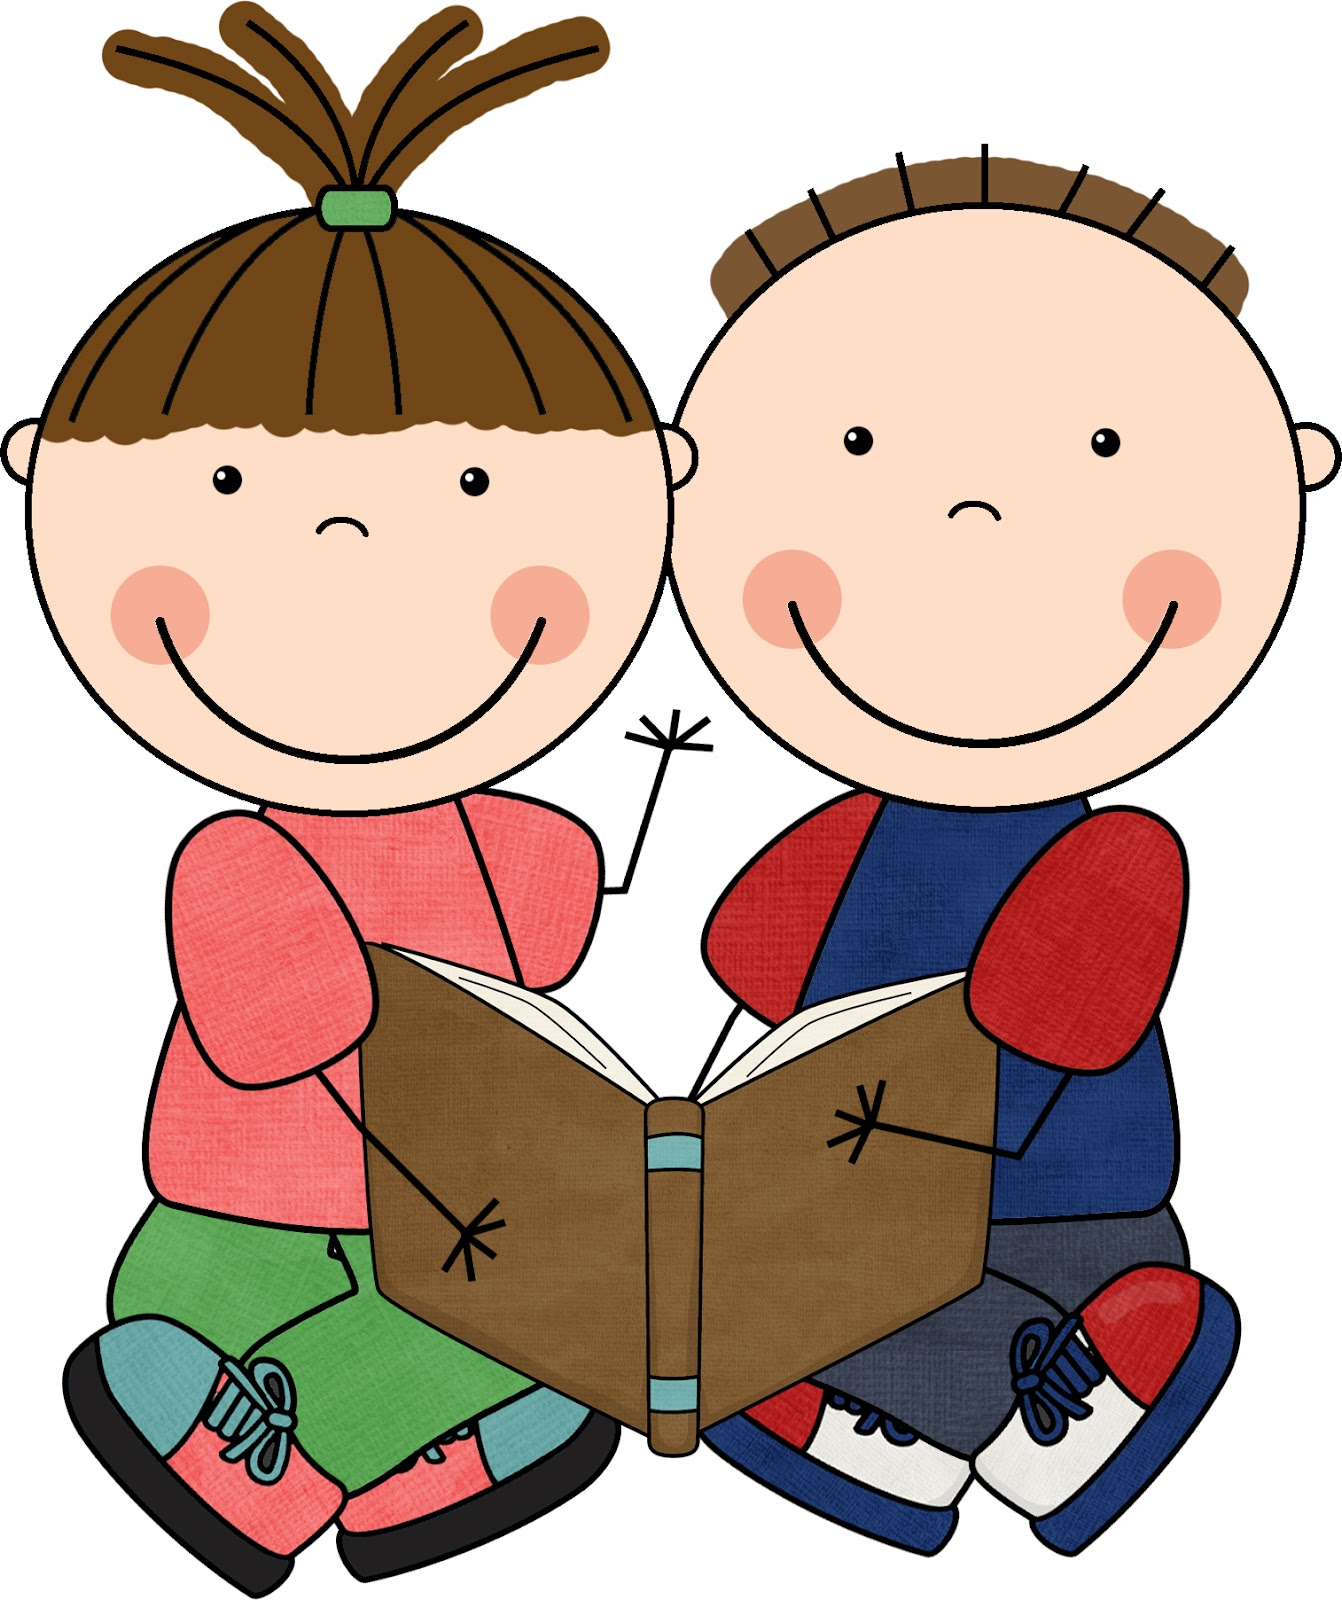 Book clipart buddy. Free learning cliparts download